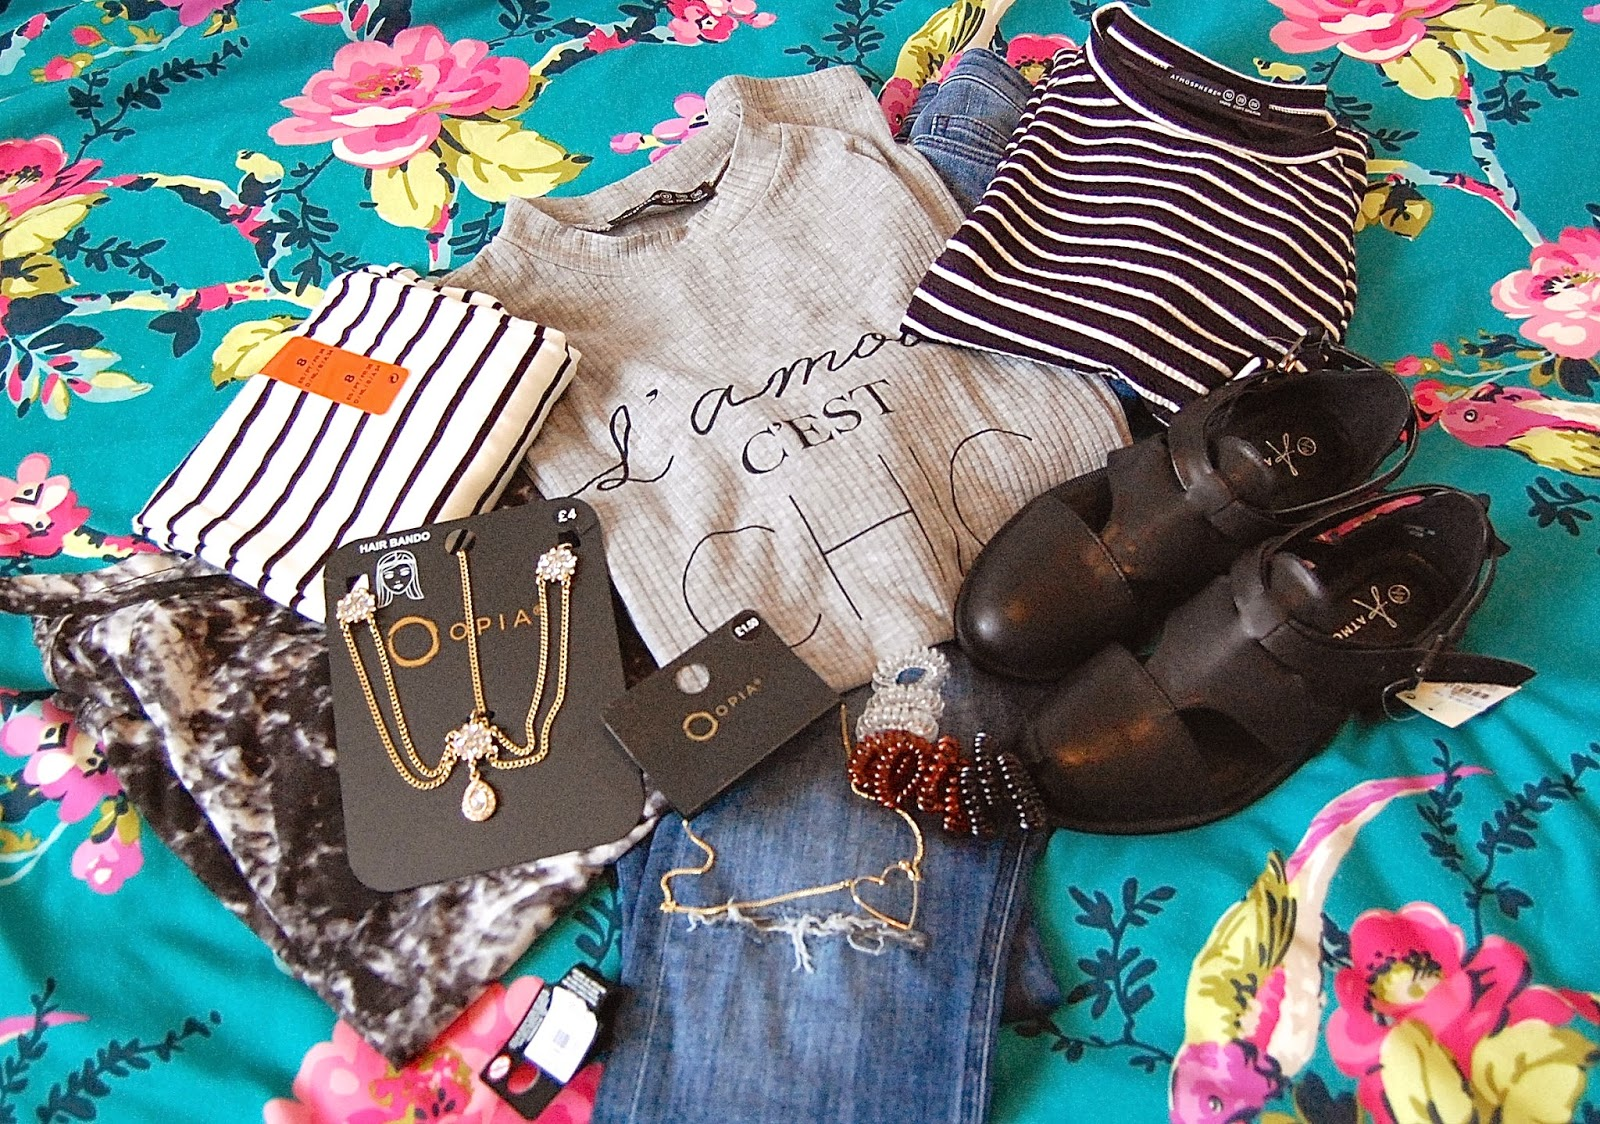 primark, dress, sandals, necklace, jewellery, headband, jeans, stripes, tops, bobbles, elastic bobbles, cord bobbles, fashion, ootd, ss15, wiwt, tyedie